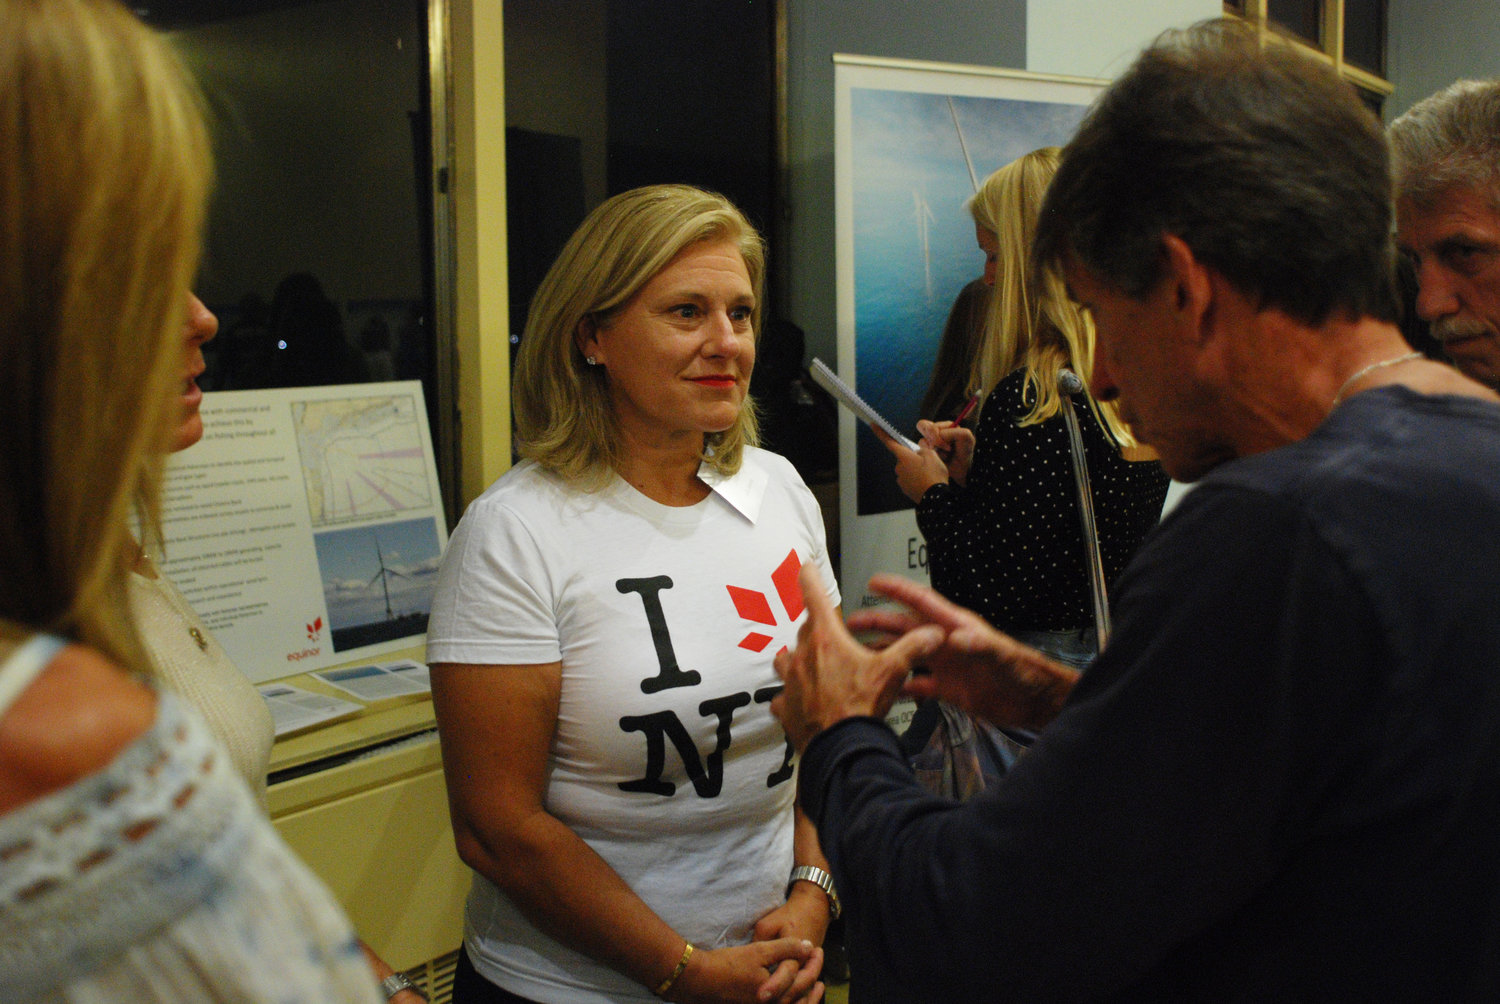 Julia Bovey, director of external affairs for Equinor Wind US, was on hand for a state-sponsored open house on Sept. 19 to present plans for two offshore wind farms, one off Jones Beach and the other off Montauk Point.